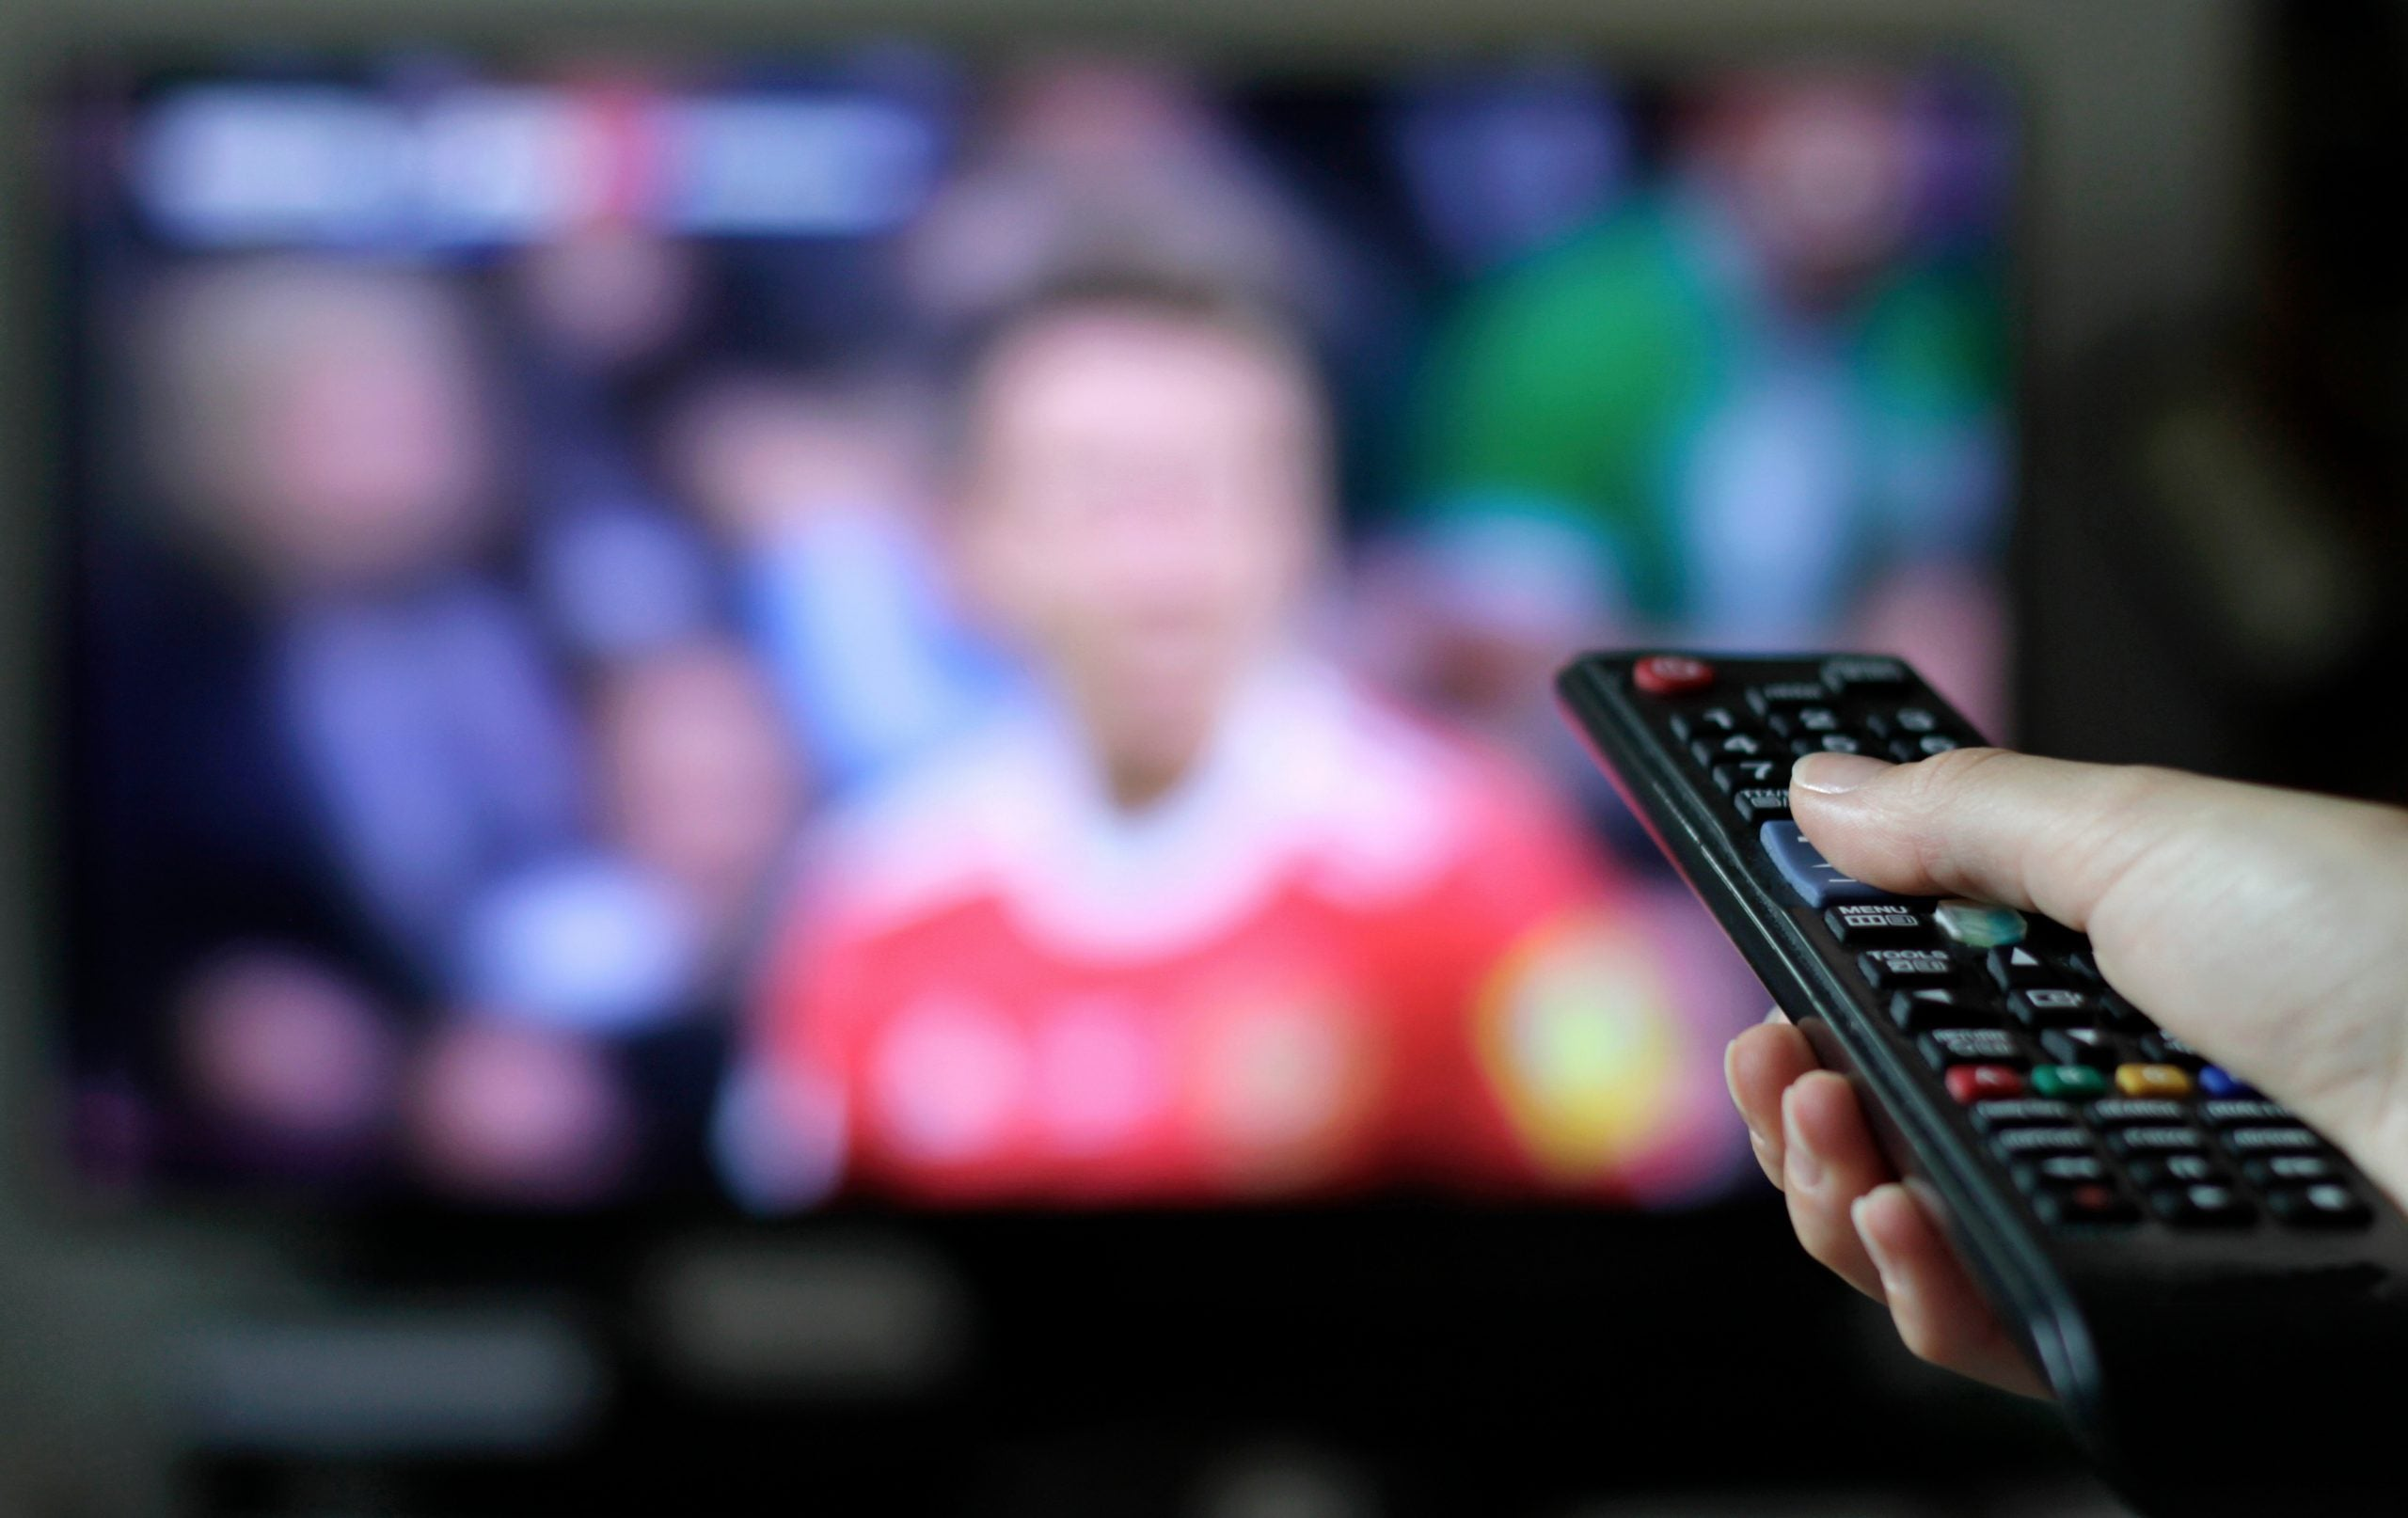 Four live matches on TV – but none on Sky or BT, despite the channels costing me a fortune